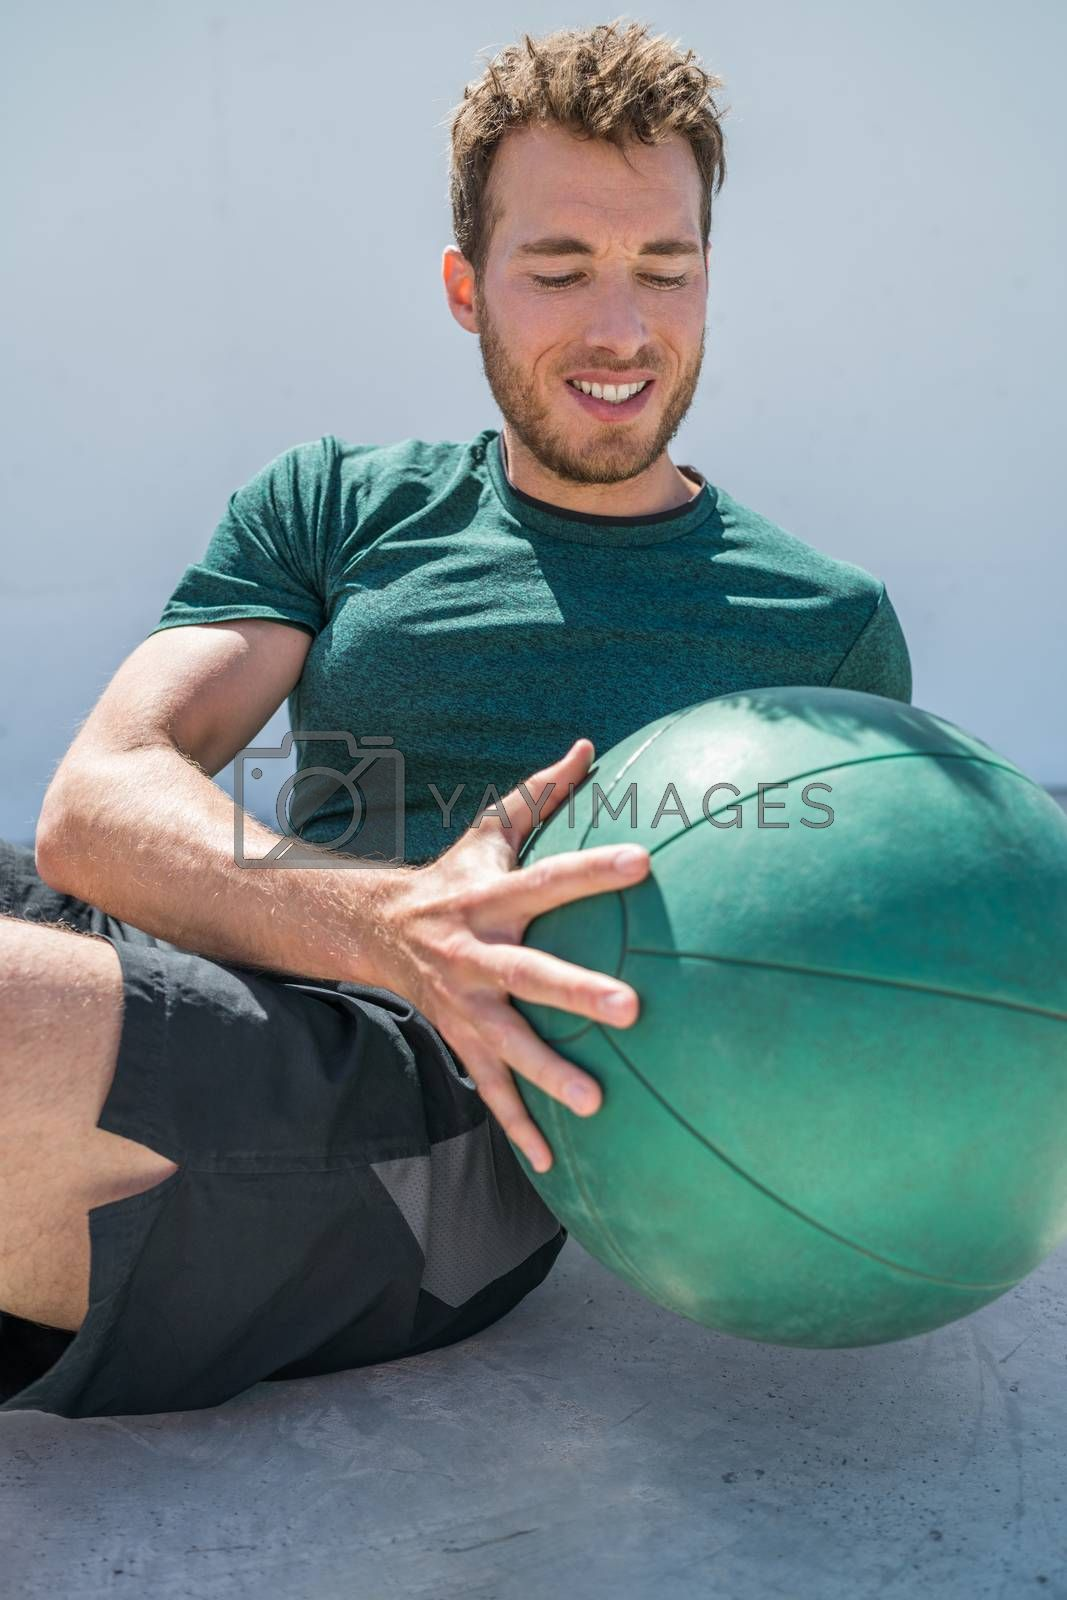 Gym workout with medicine ball exercise man by Maridav